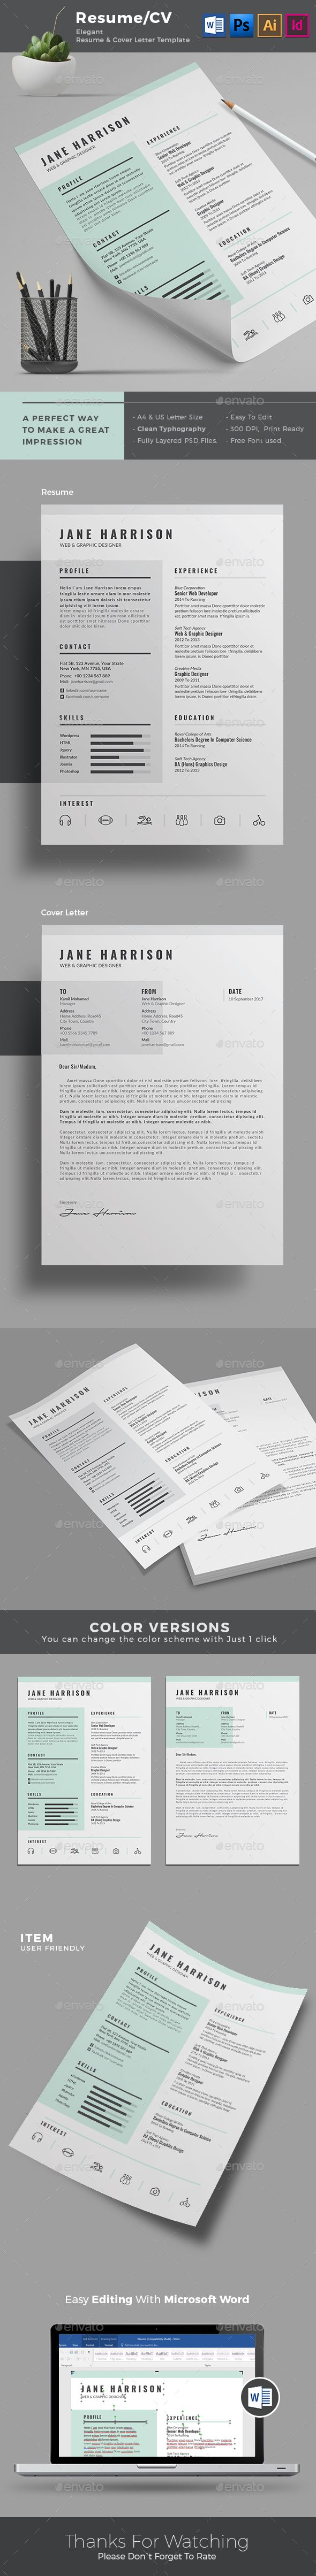 best images about design resumes simple minimal resume template design a4 us letter size indesign idml psd